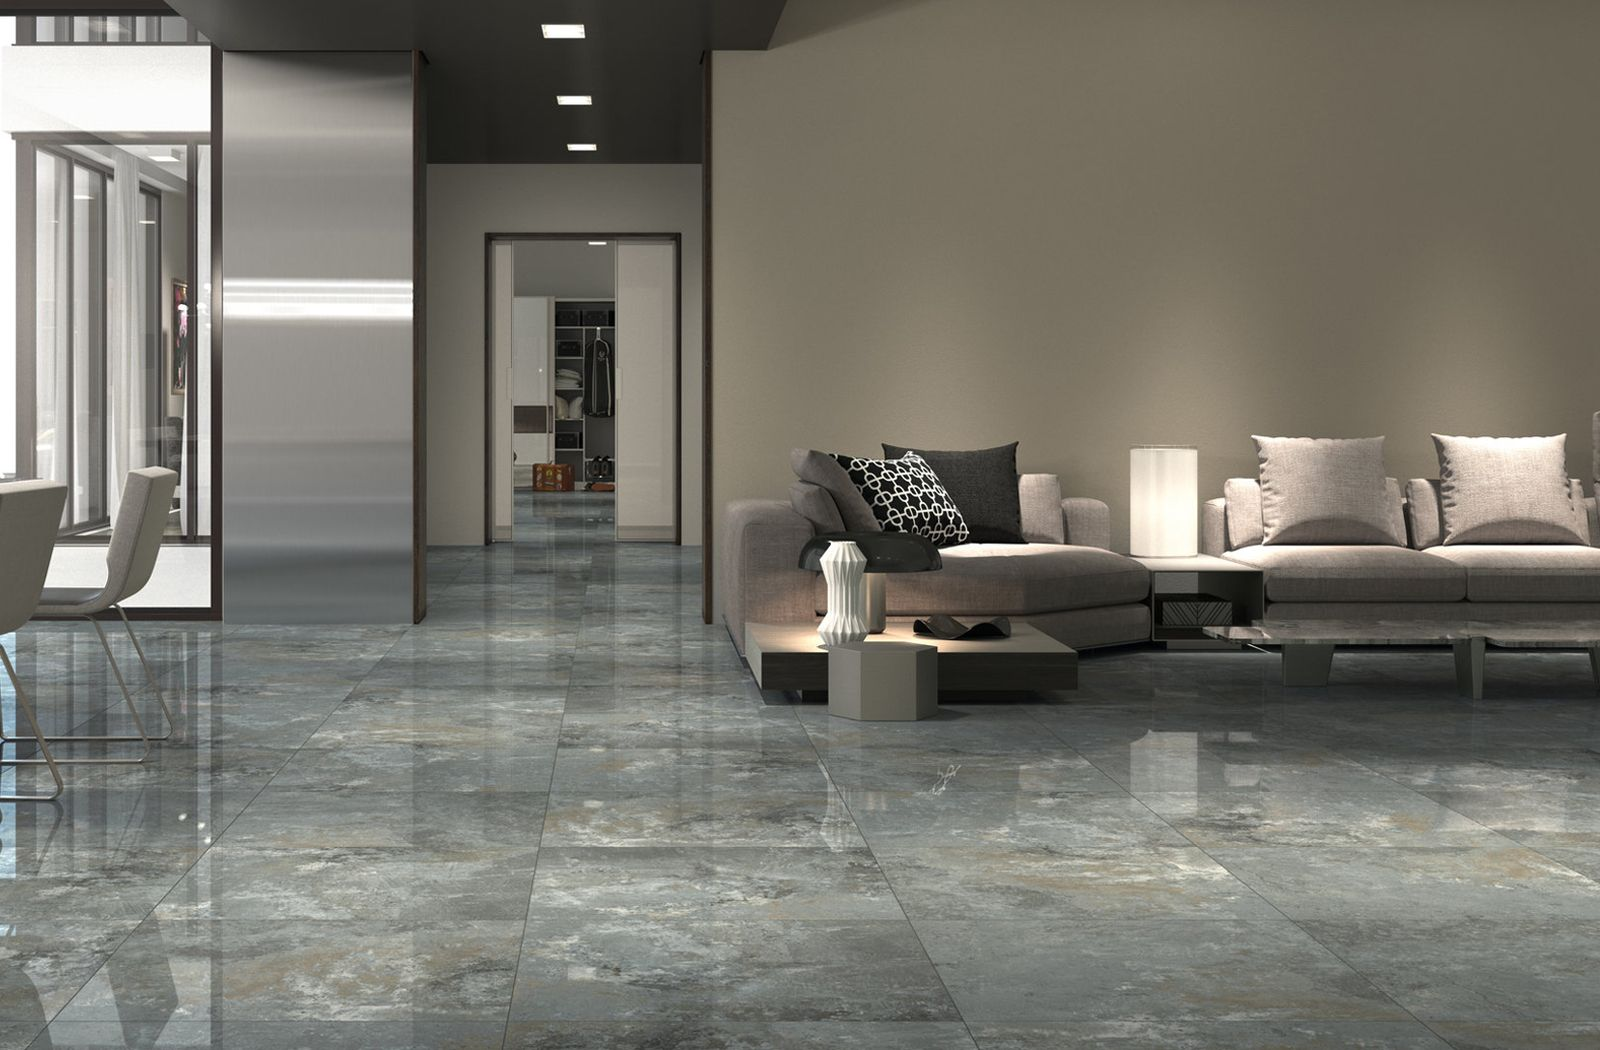 Luxurious And Elegant Living Room Floor With Tiles From The Gneis Collection By Fanal Living Room Flooring Elegant Living Room Ceramic Floor Tiles